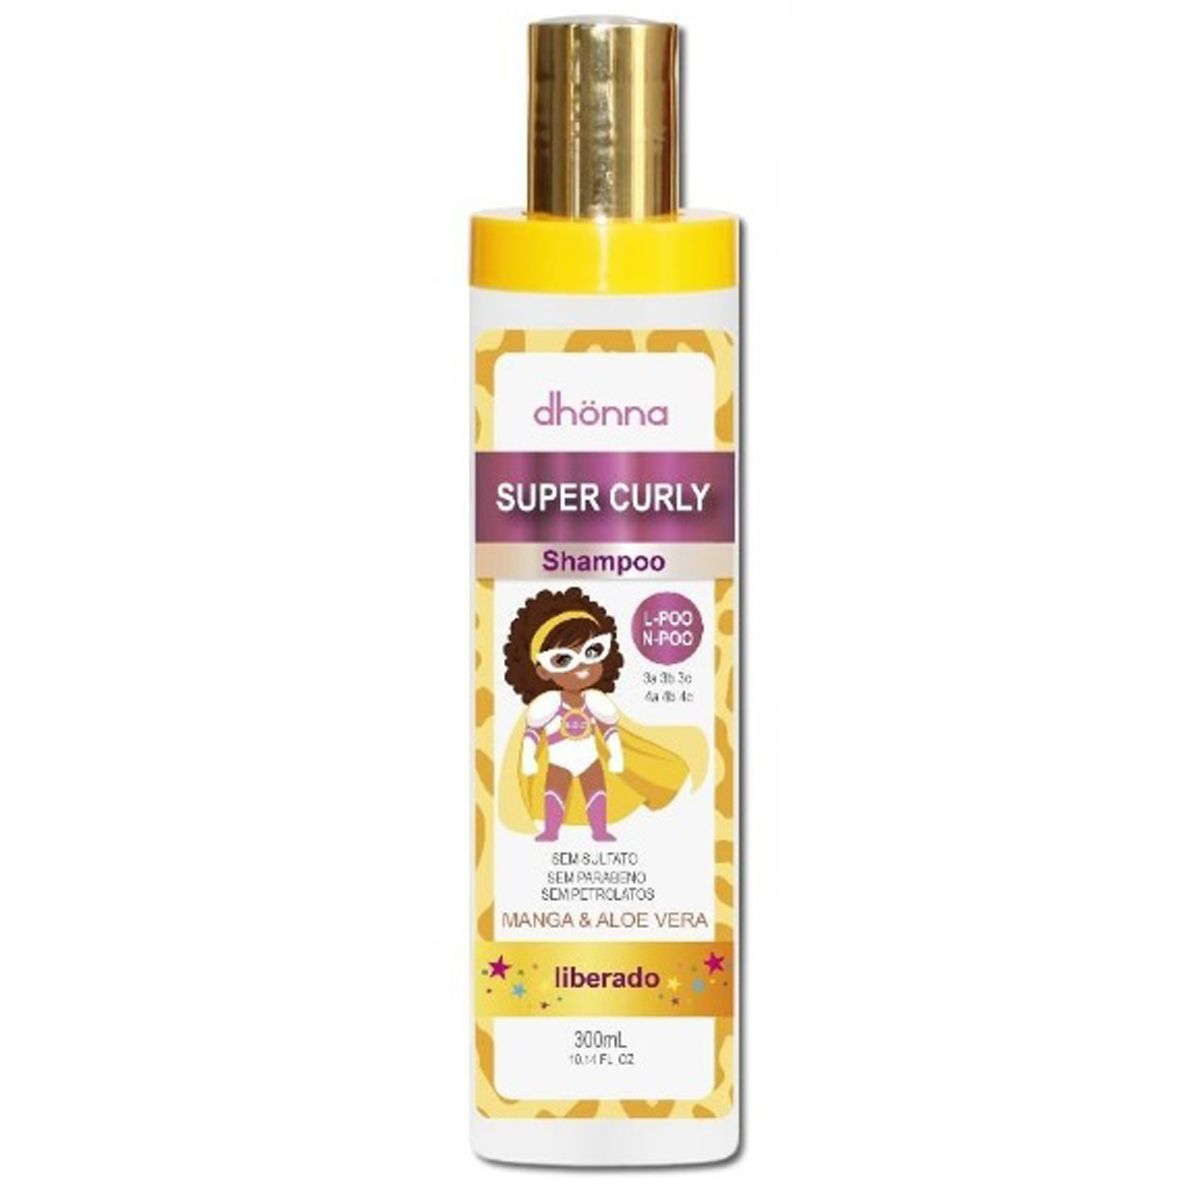 Dhonna - Super Curly - Shampoo - 300ml